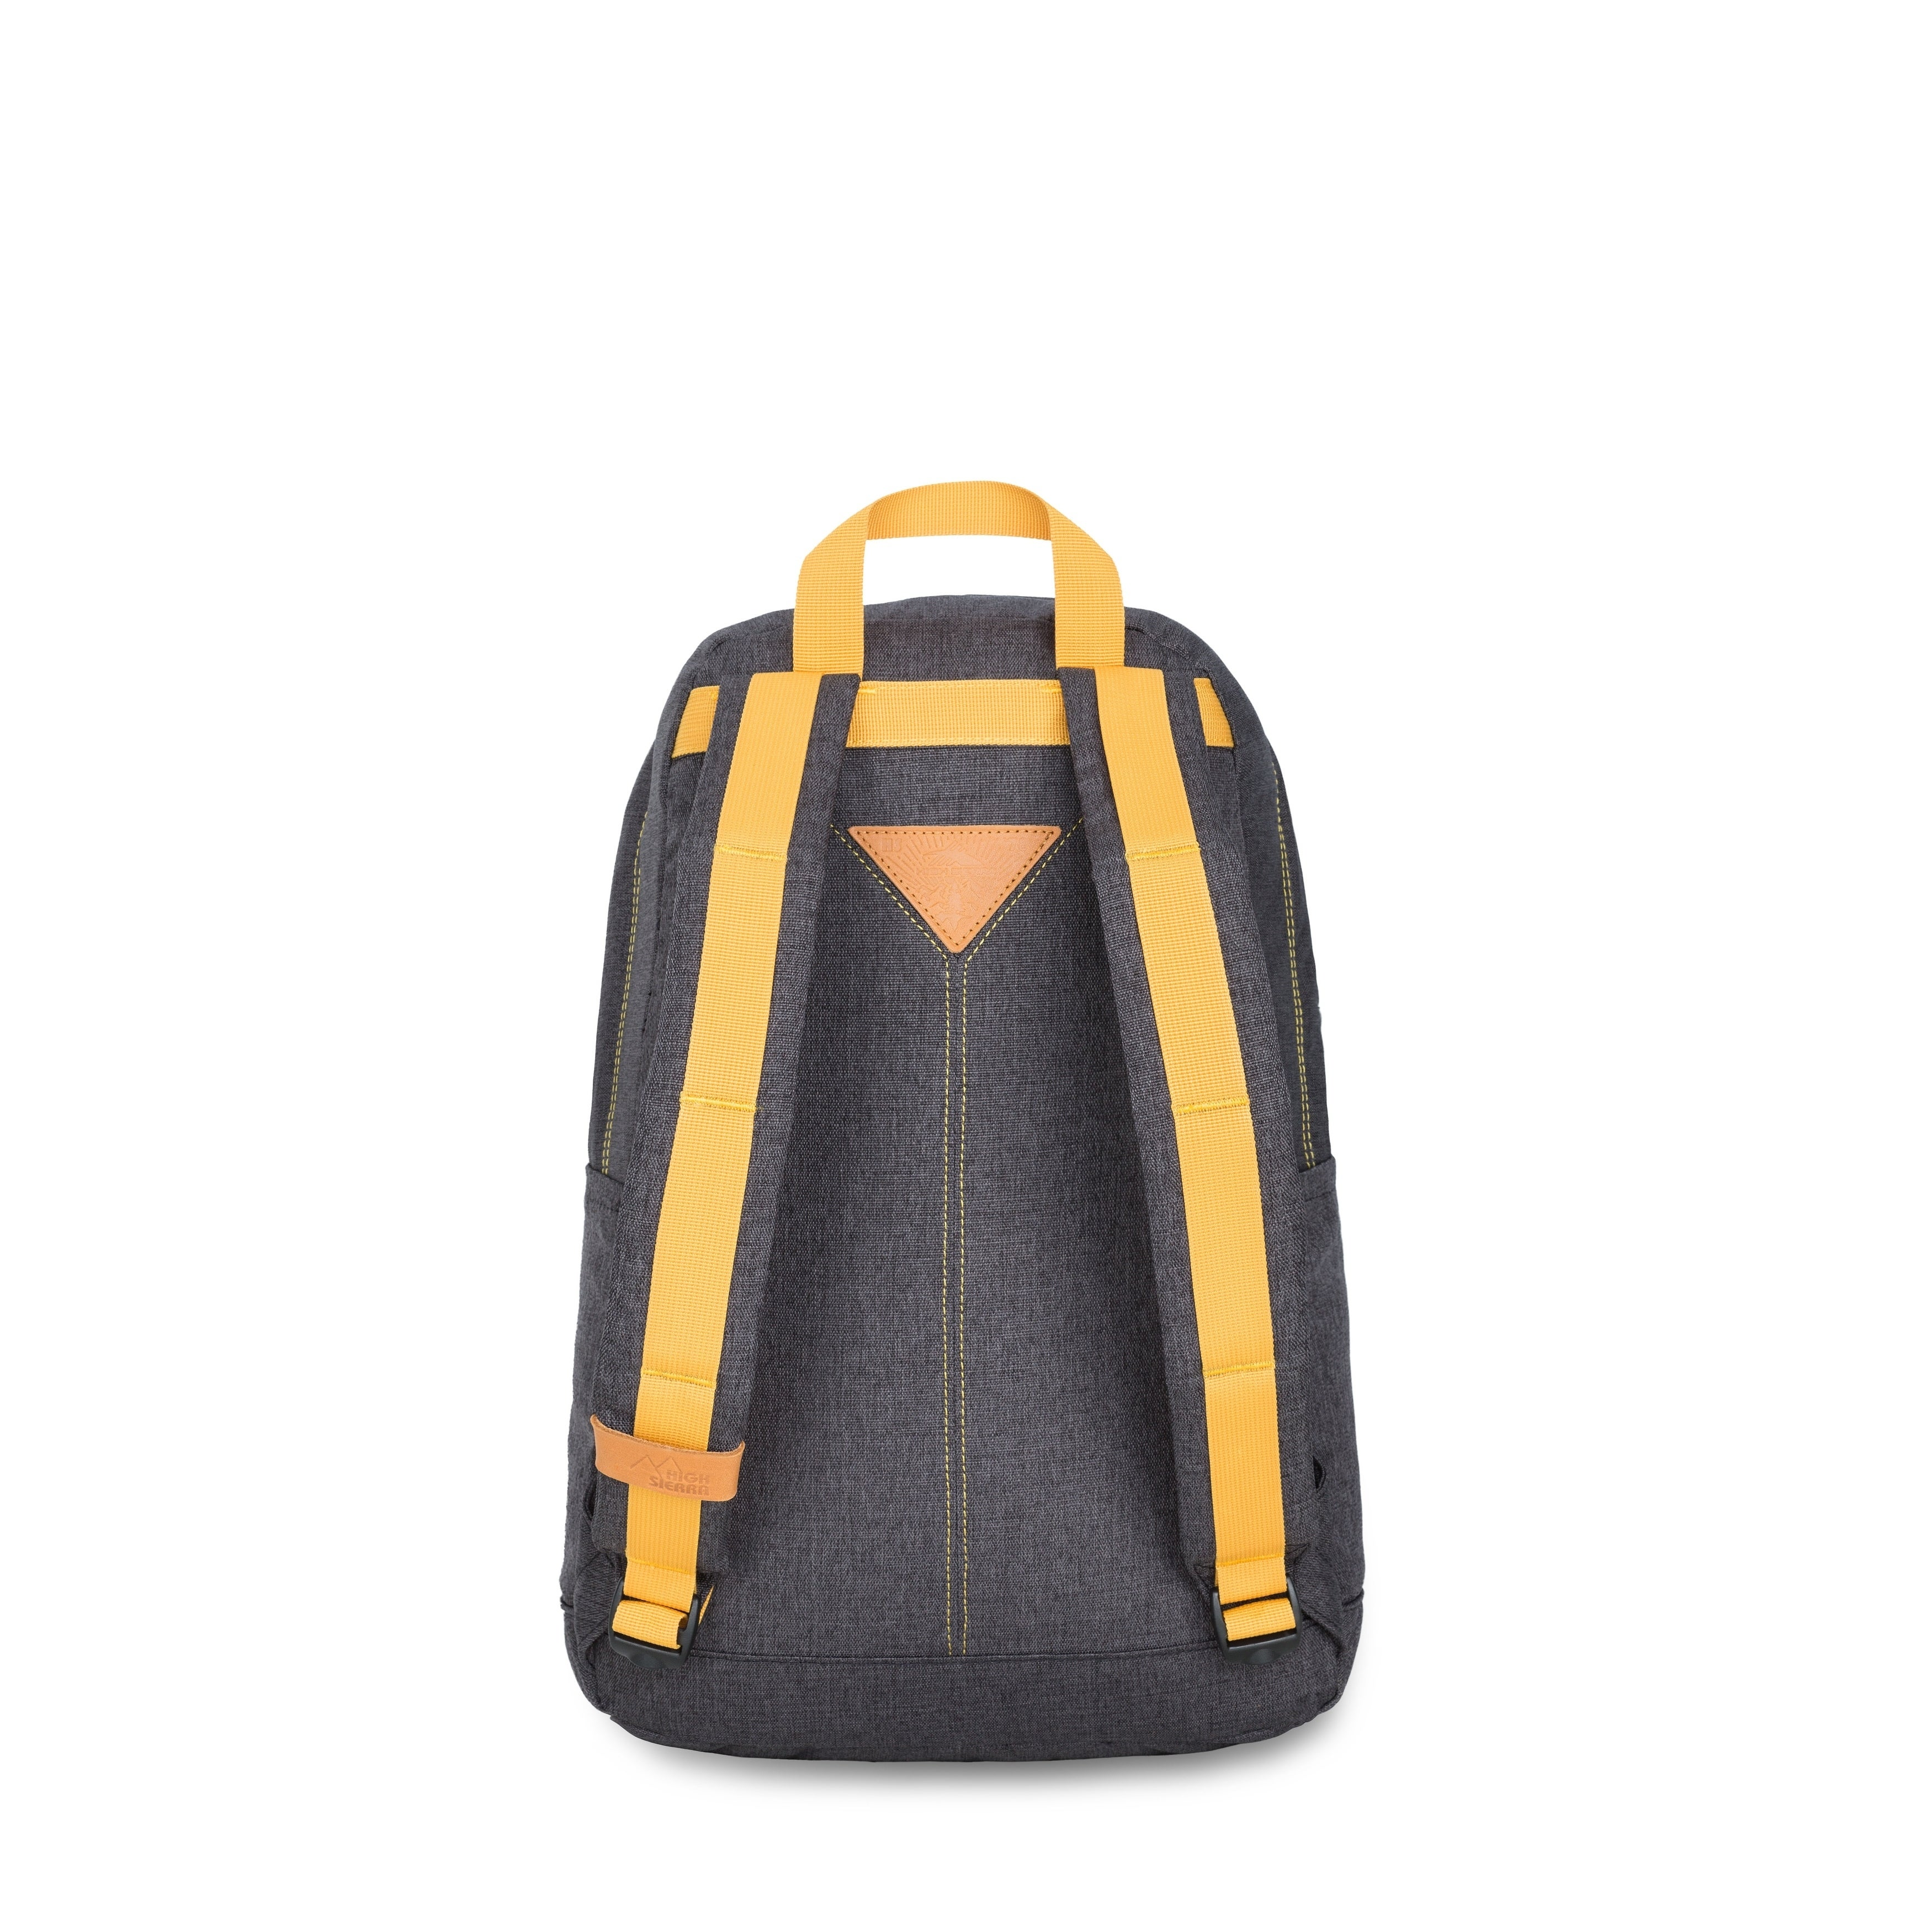 High Sierra Tear Drop Backpack, Black/Gold